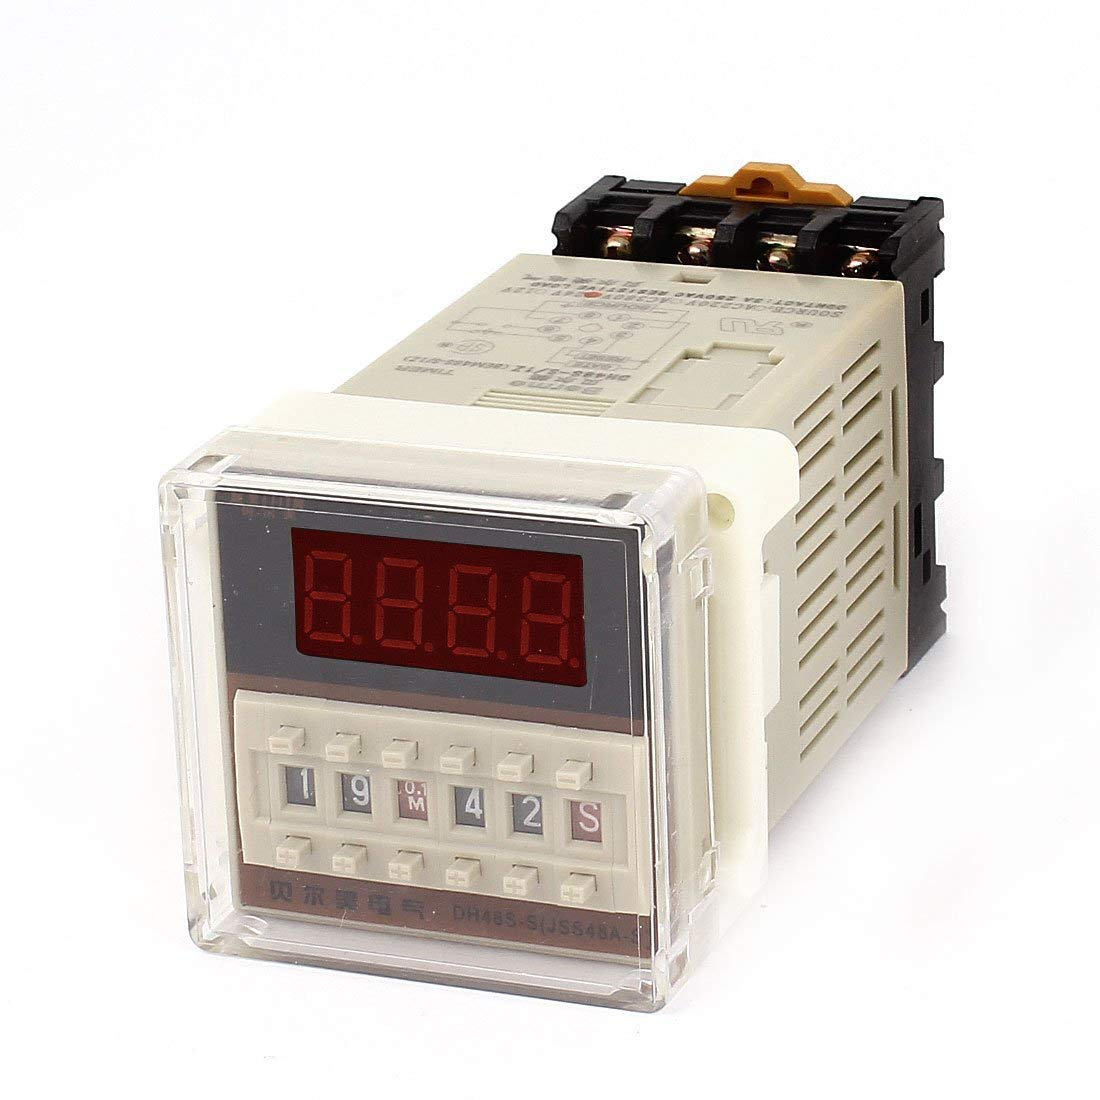 YXQ DH48S-S 0.1S-99H 8-Pin Adjustable Time Delay Timer Relay+PF083A Relay Base, 24VDC 250VAC